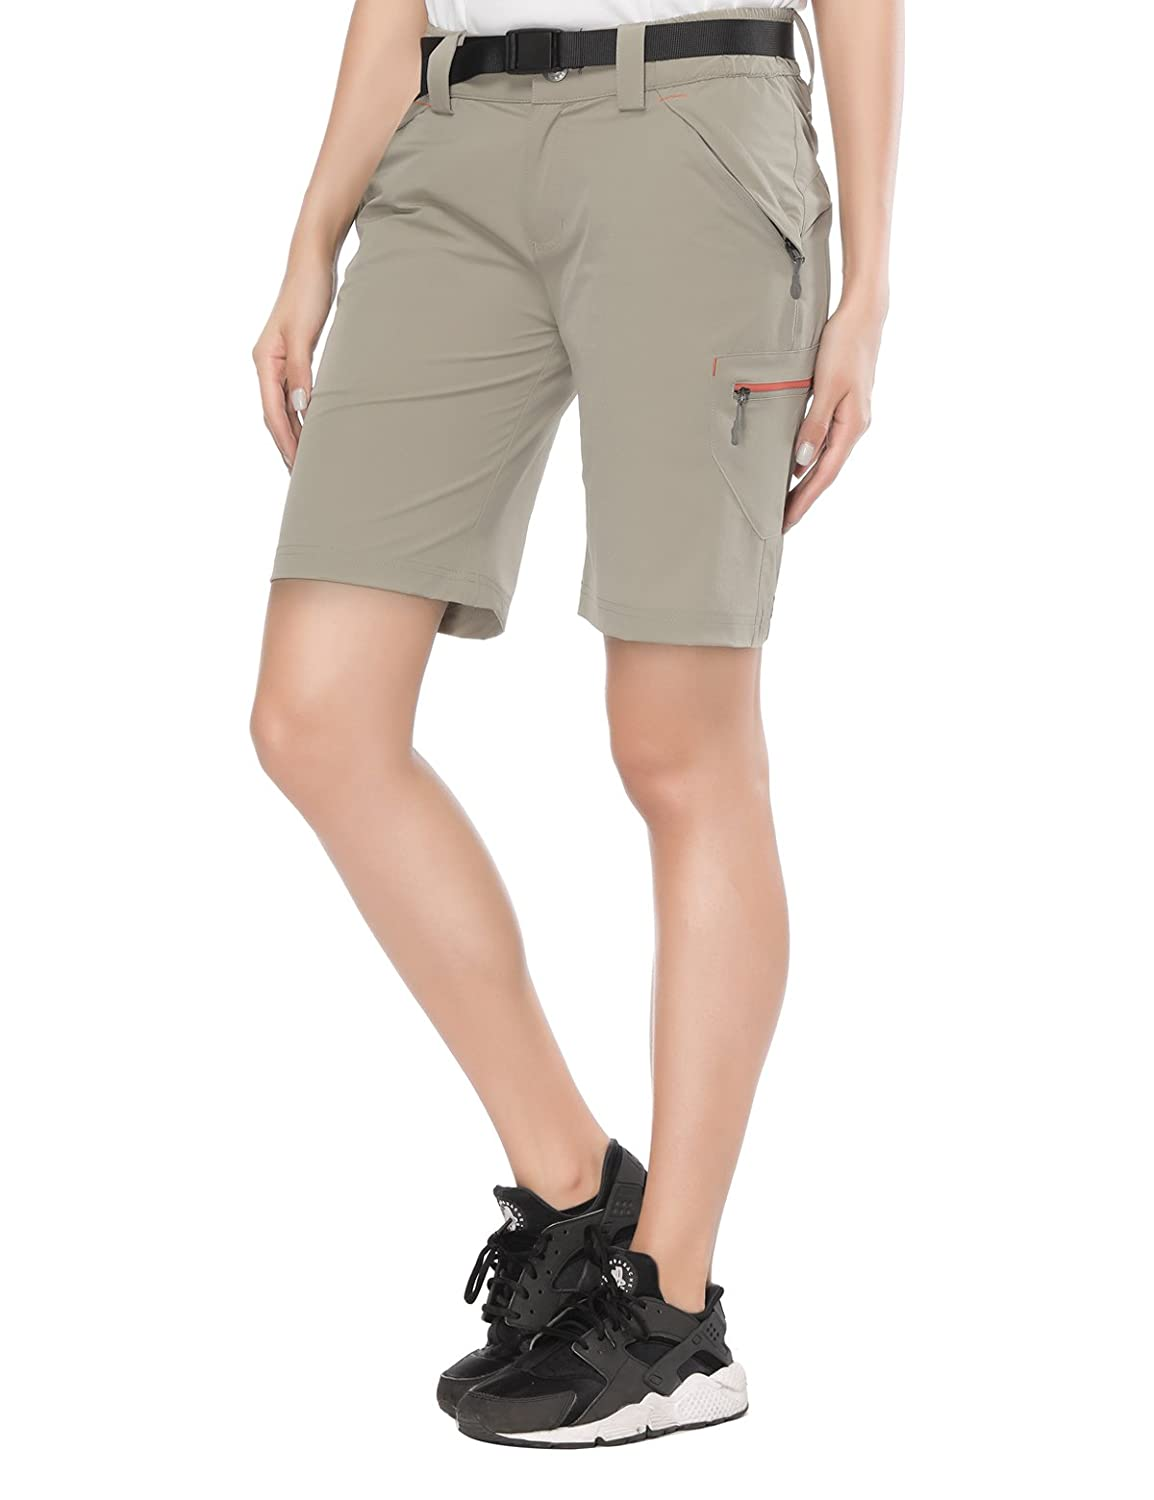 a406b07431b1c Versatile cargo shorts features moisture wicking, quick drying and  breathable, work nicely during backpacking, travel, trekking, workout,  hiking, ...